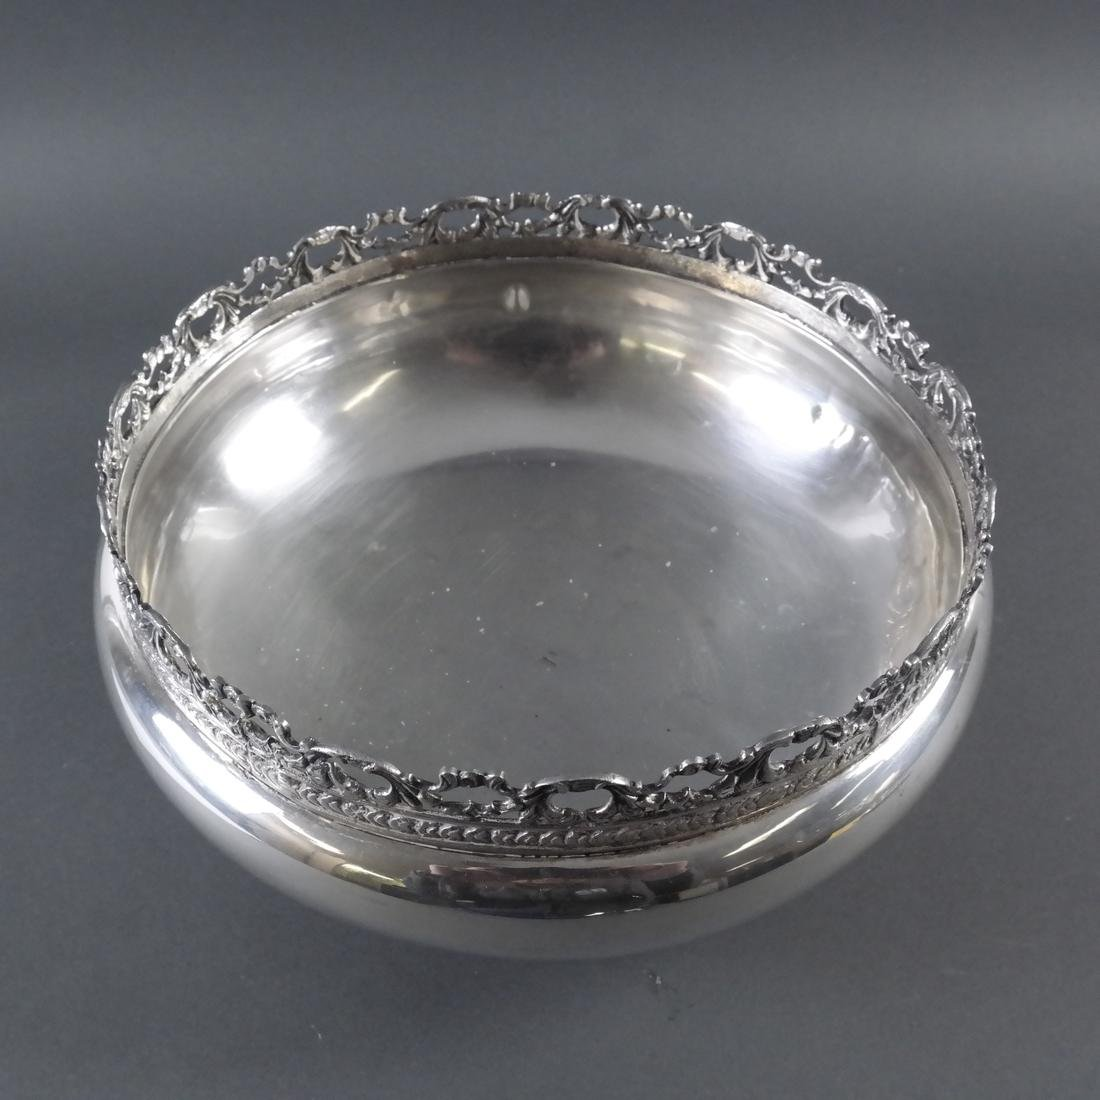 .900 Standard Silver Footed Bowl - 5